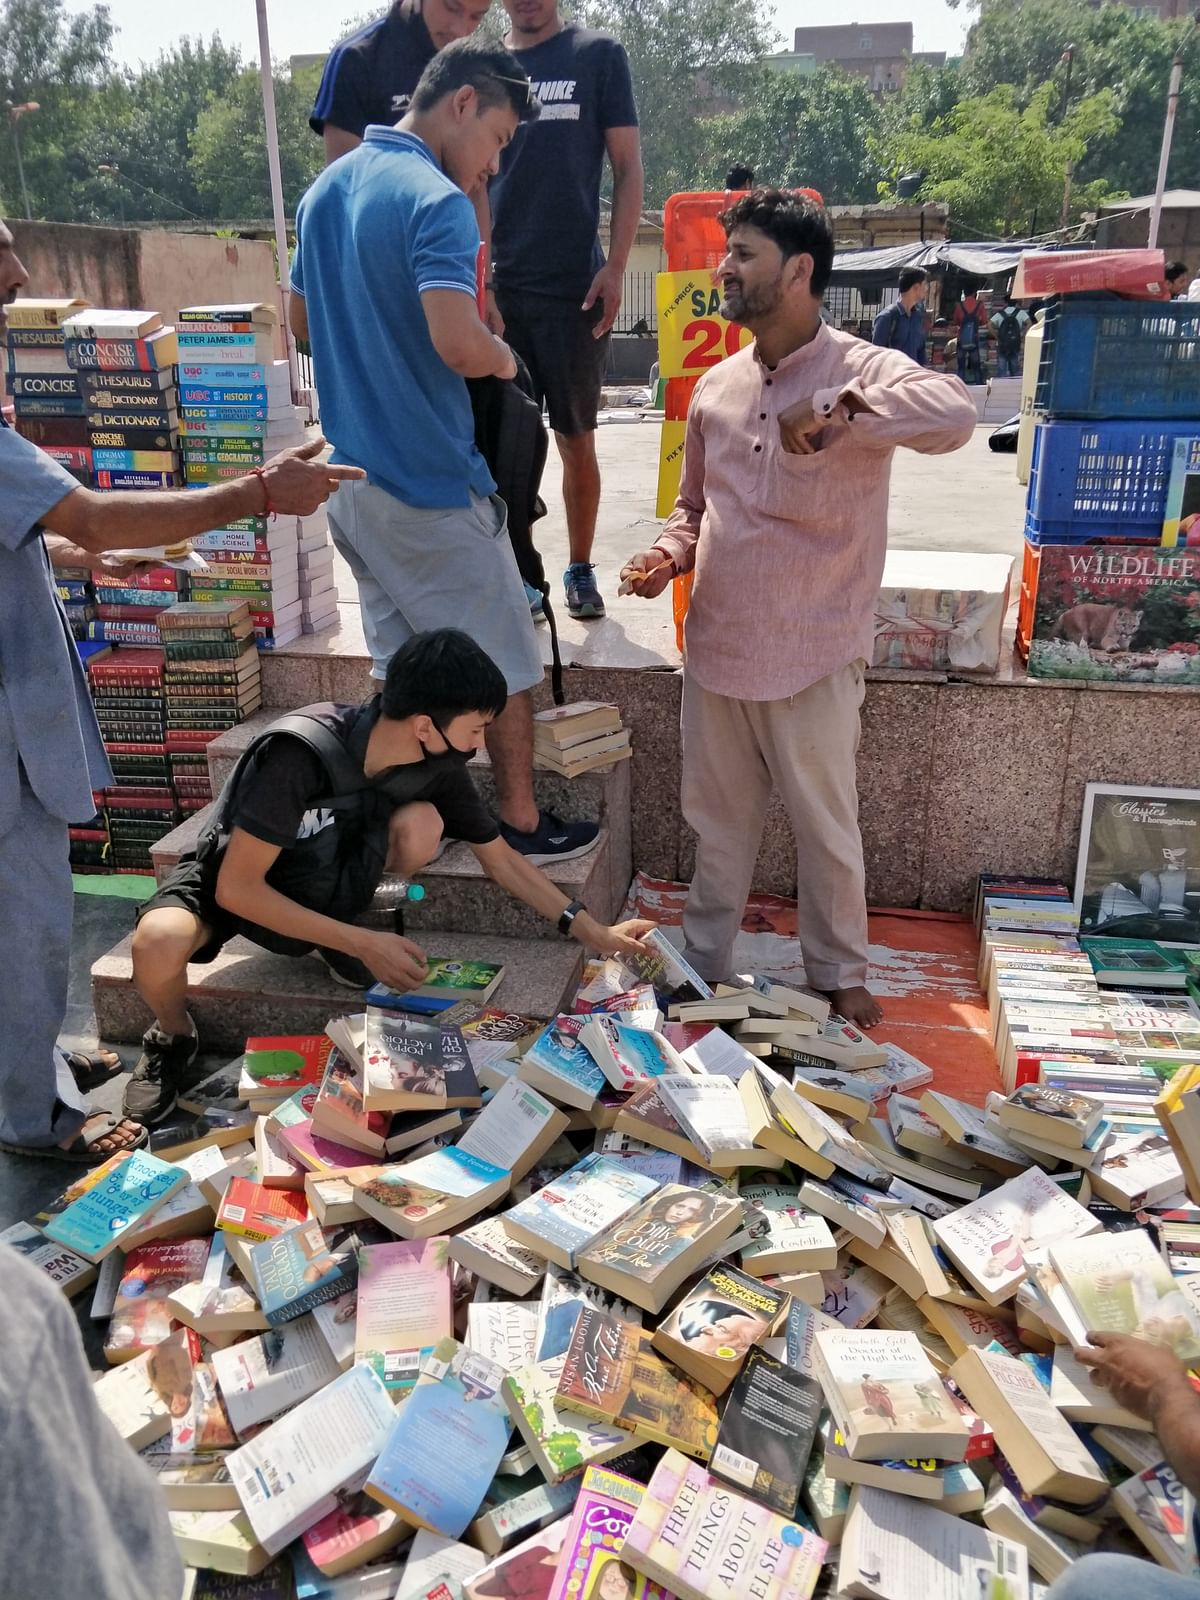 Shopkeepers had displayed all the books in the open under the scorching sun.